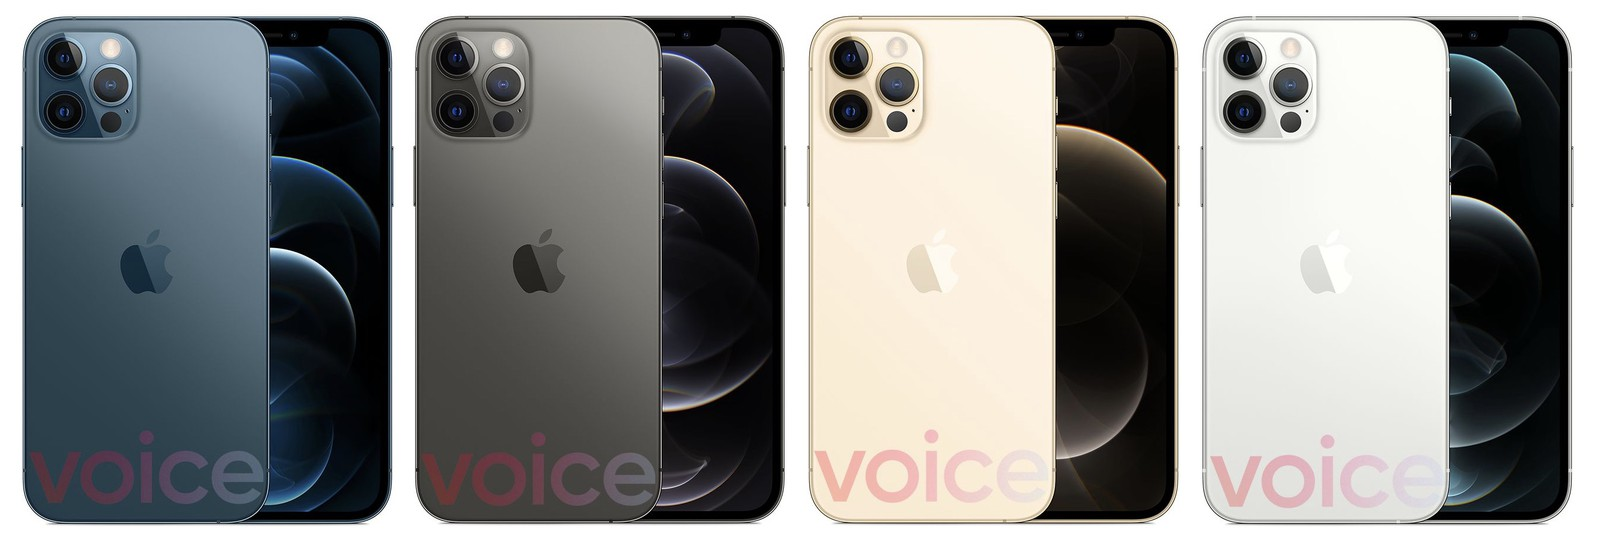 iPhone 12 Pro and iPhone 12 Pro Max leak in blue, graphite ...